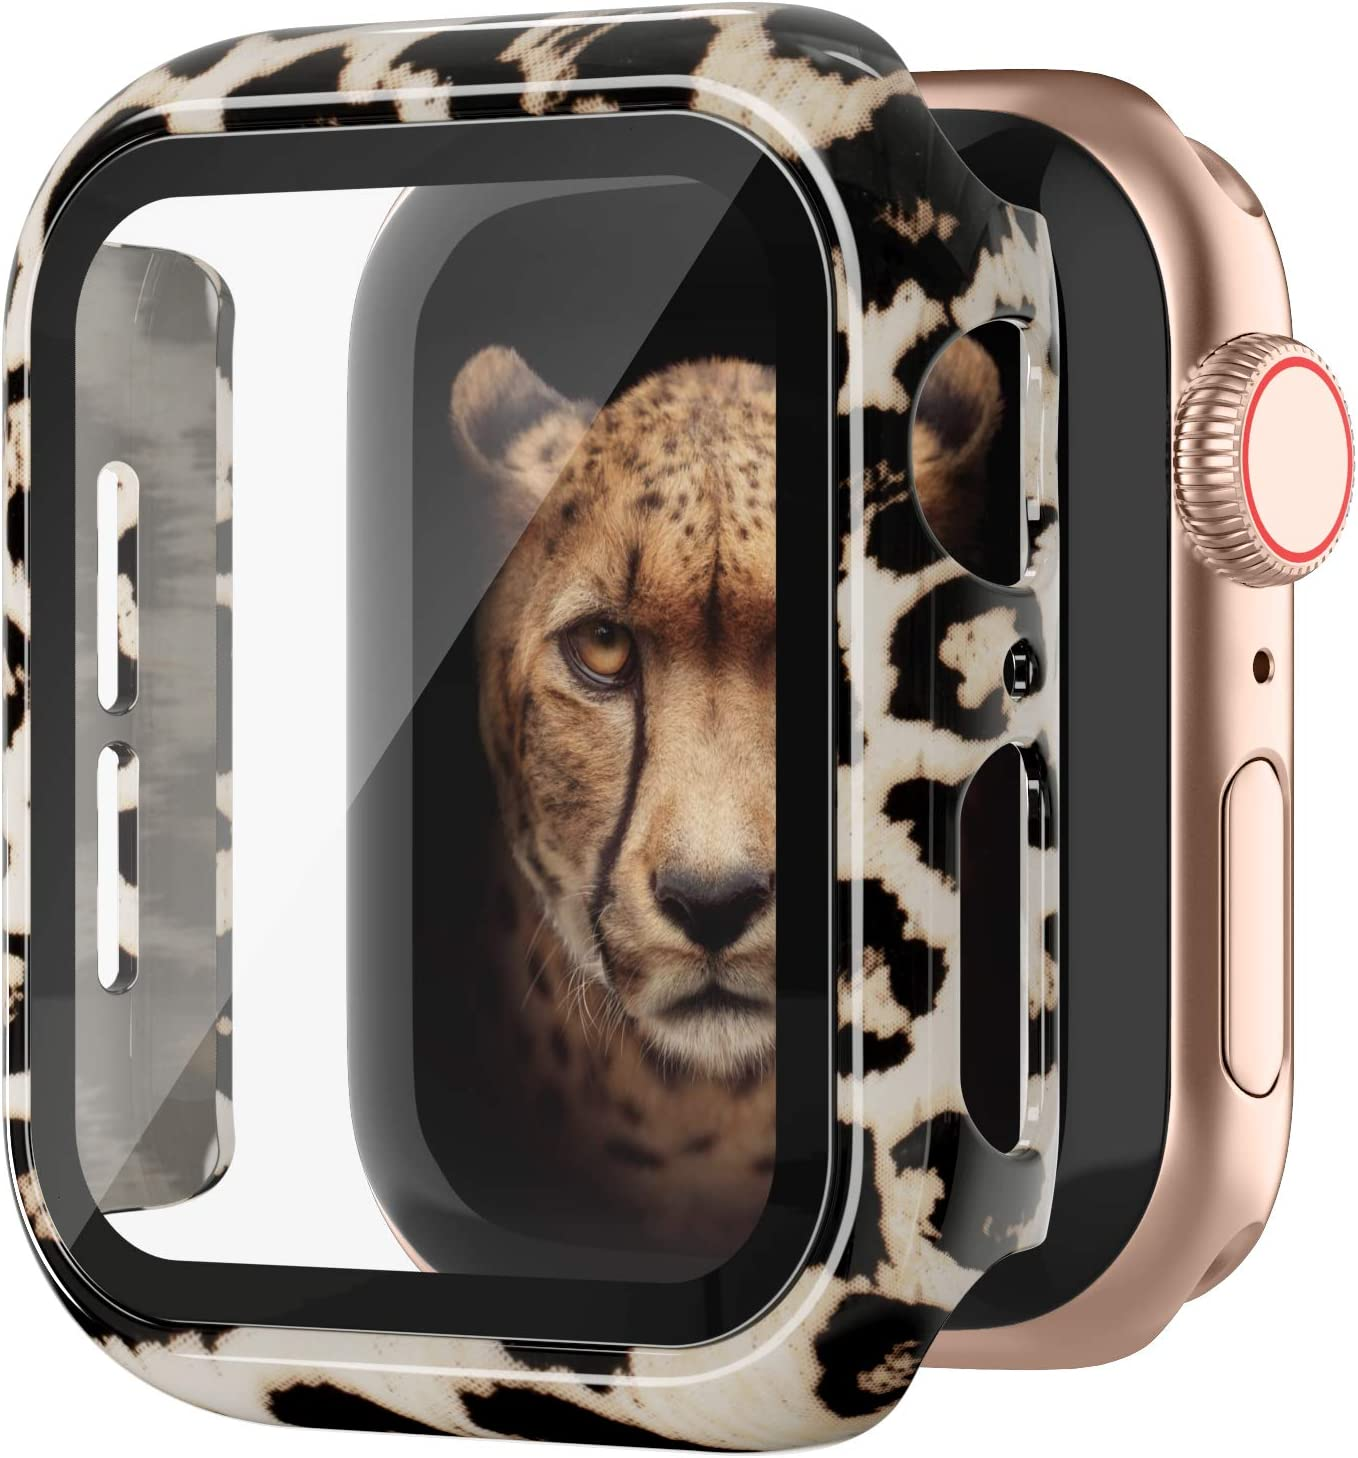 Goosehill Compatible Apple Watch Case 40mm Series 6/5/4/SE with Tempered Glass Screen Protector, Full Cover Ultra-Thin Hard PC Bumper Fashion Leopard Protective Case for Women Girls iWatch